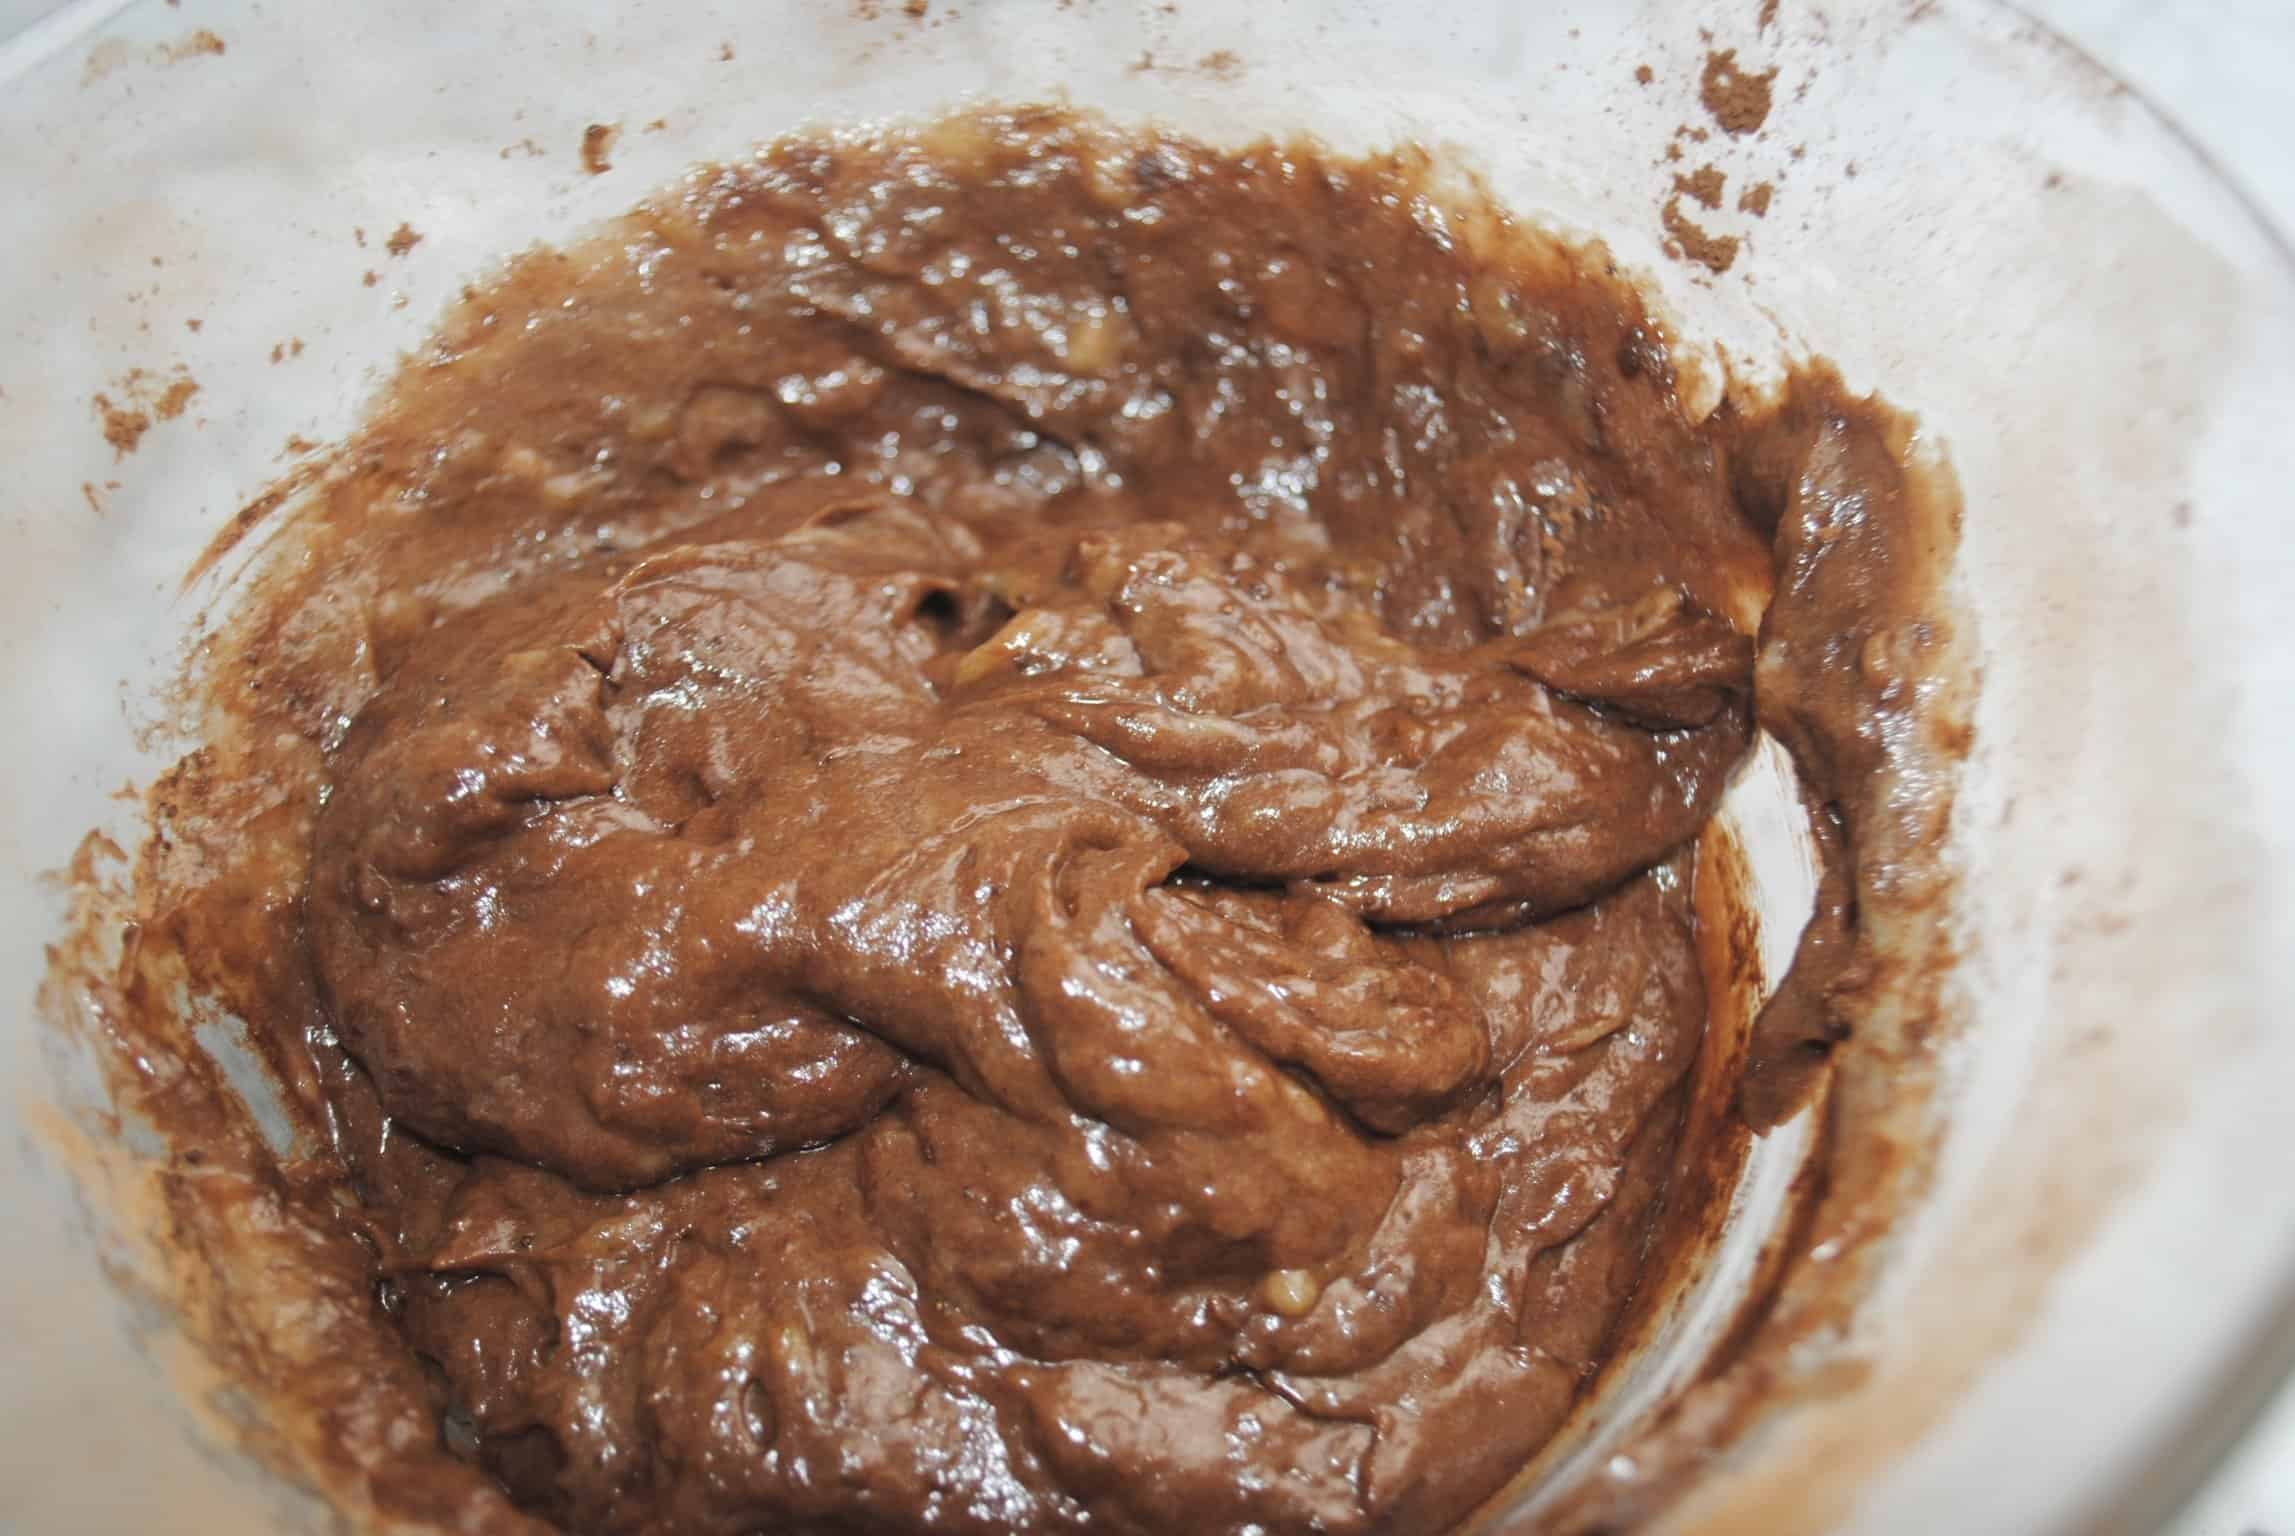 banana bread mixture after adding cocoa in a glass bowl